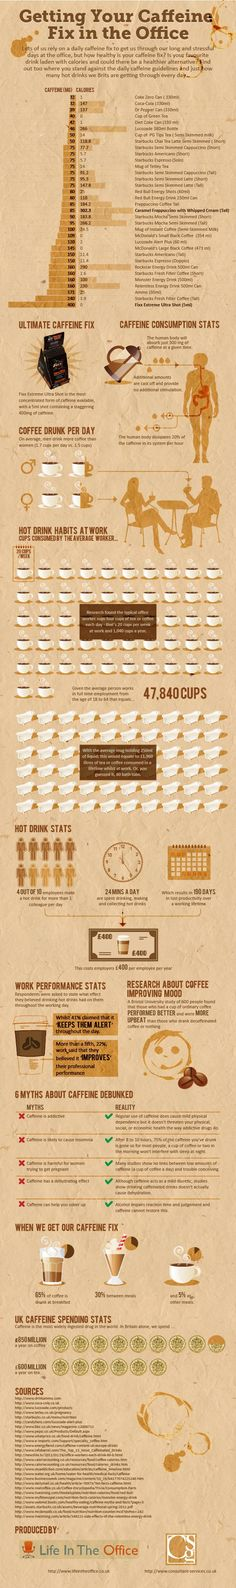 Coffee infographic: Coffee at work